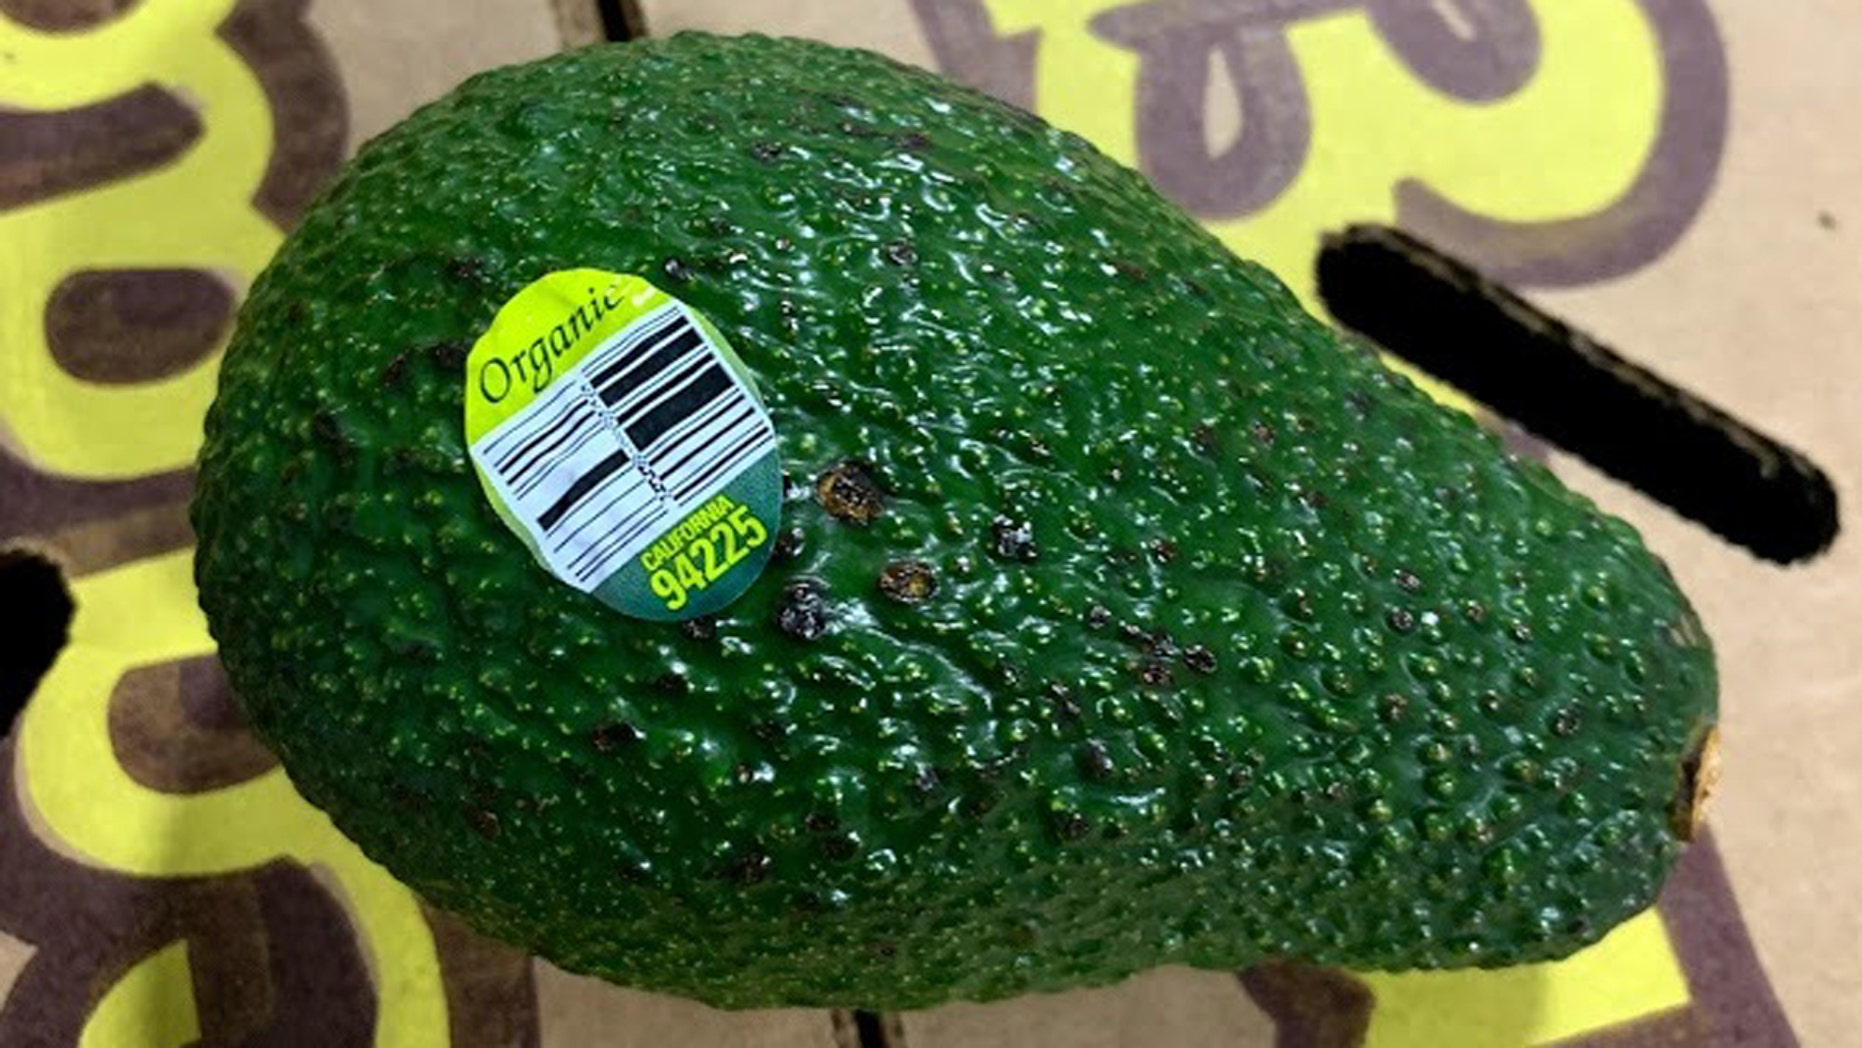 Henry Avocado Corporation voluntarily recalls California-grown whole avocados sold in retail outlets in 6 states, fearing that they might be contaminated with Listeria.